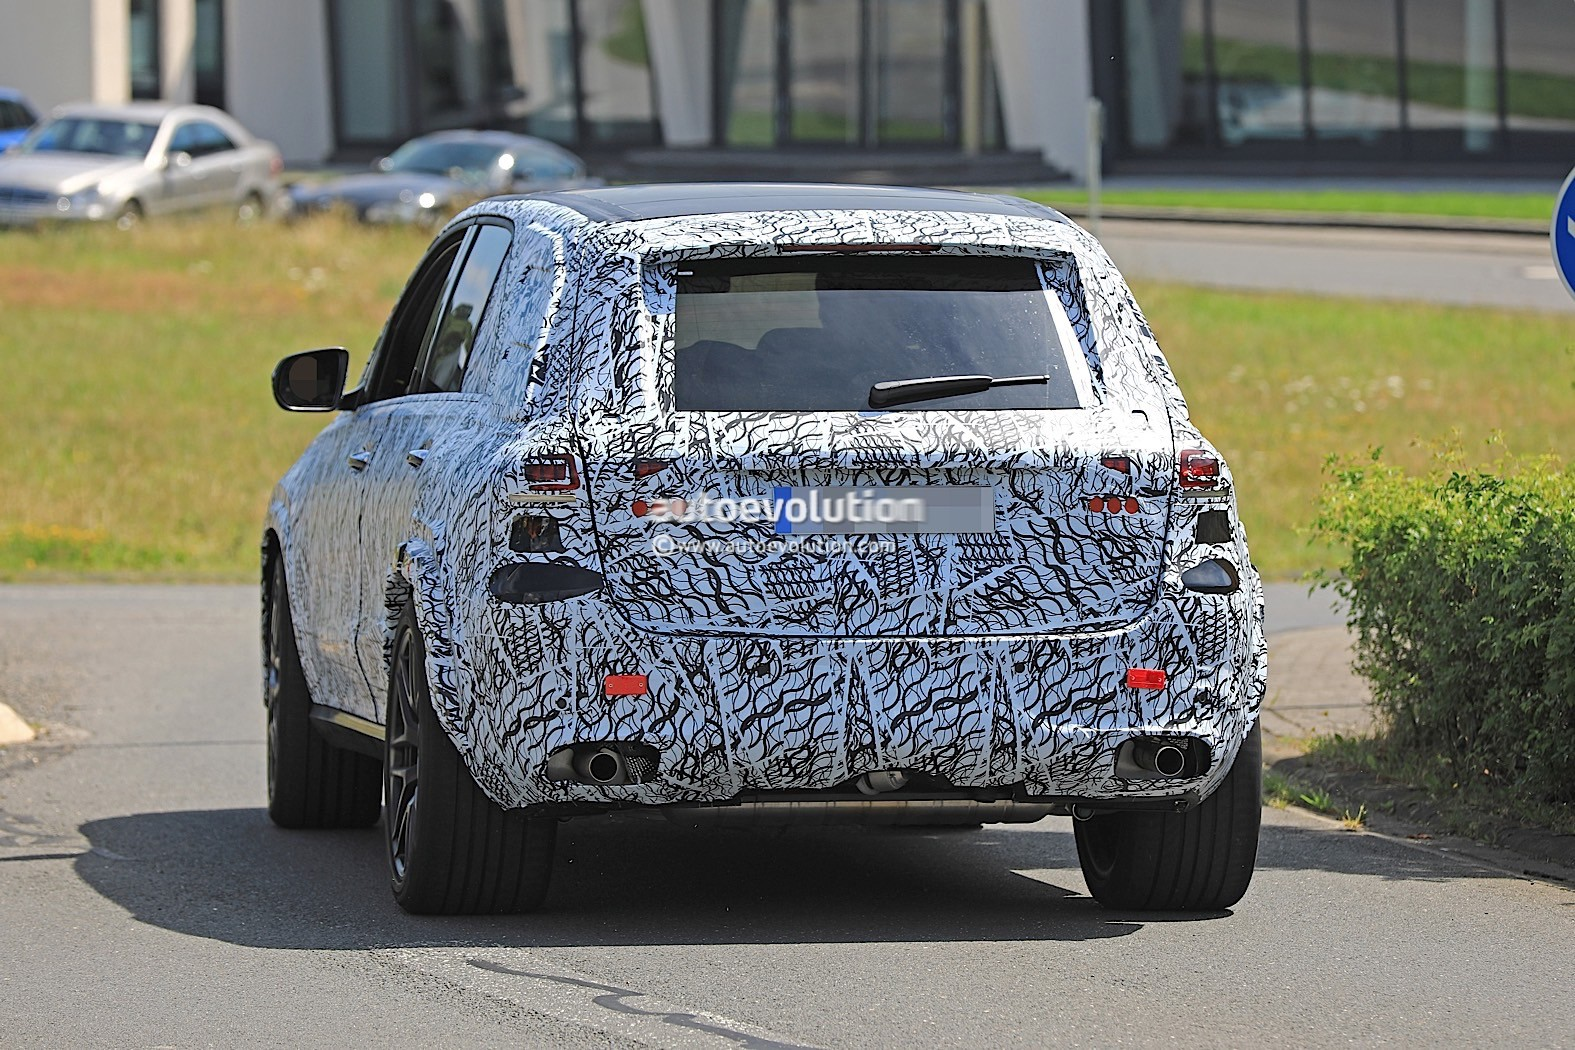 2019 mercedes-amg gle 63 flaunts panamericana grille